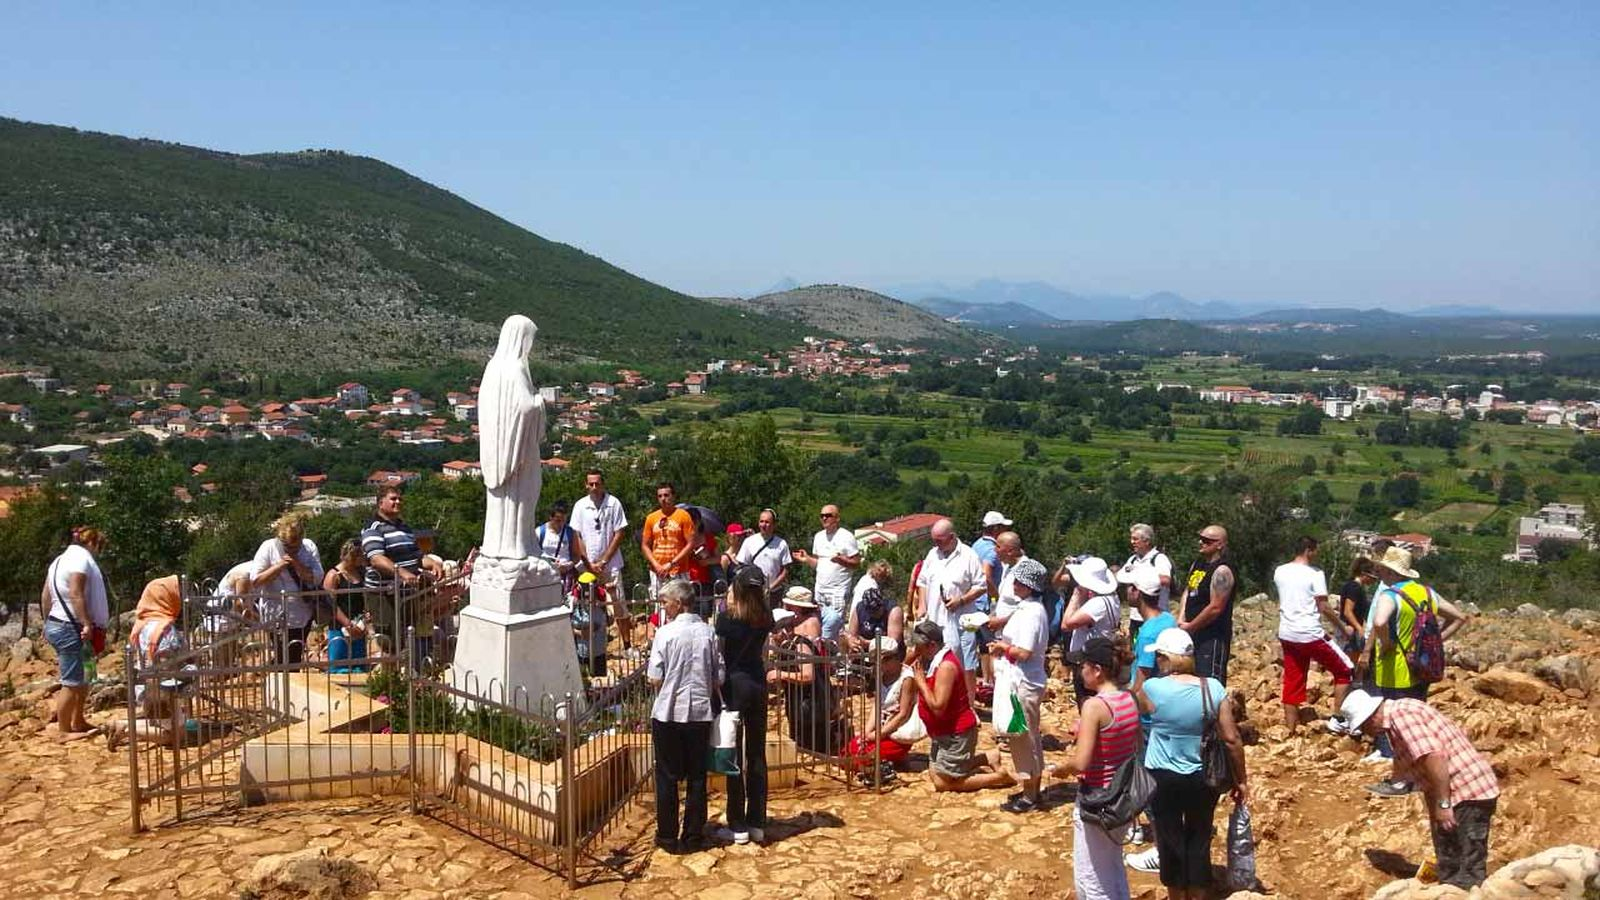 -images-excursions-clash-of-cultures-4-b-medjugorje-the-hill-of-virgin-mary.jpg